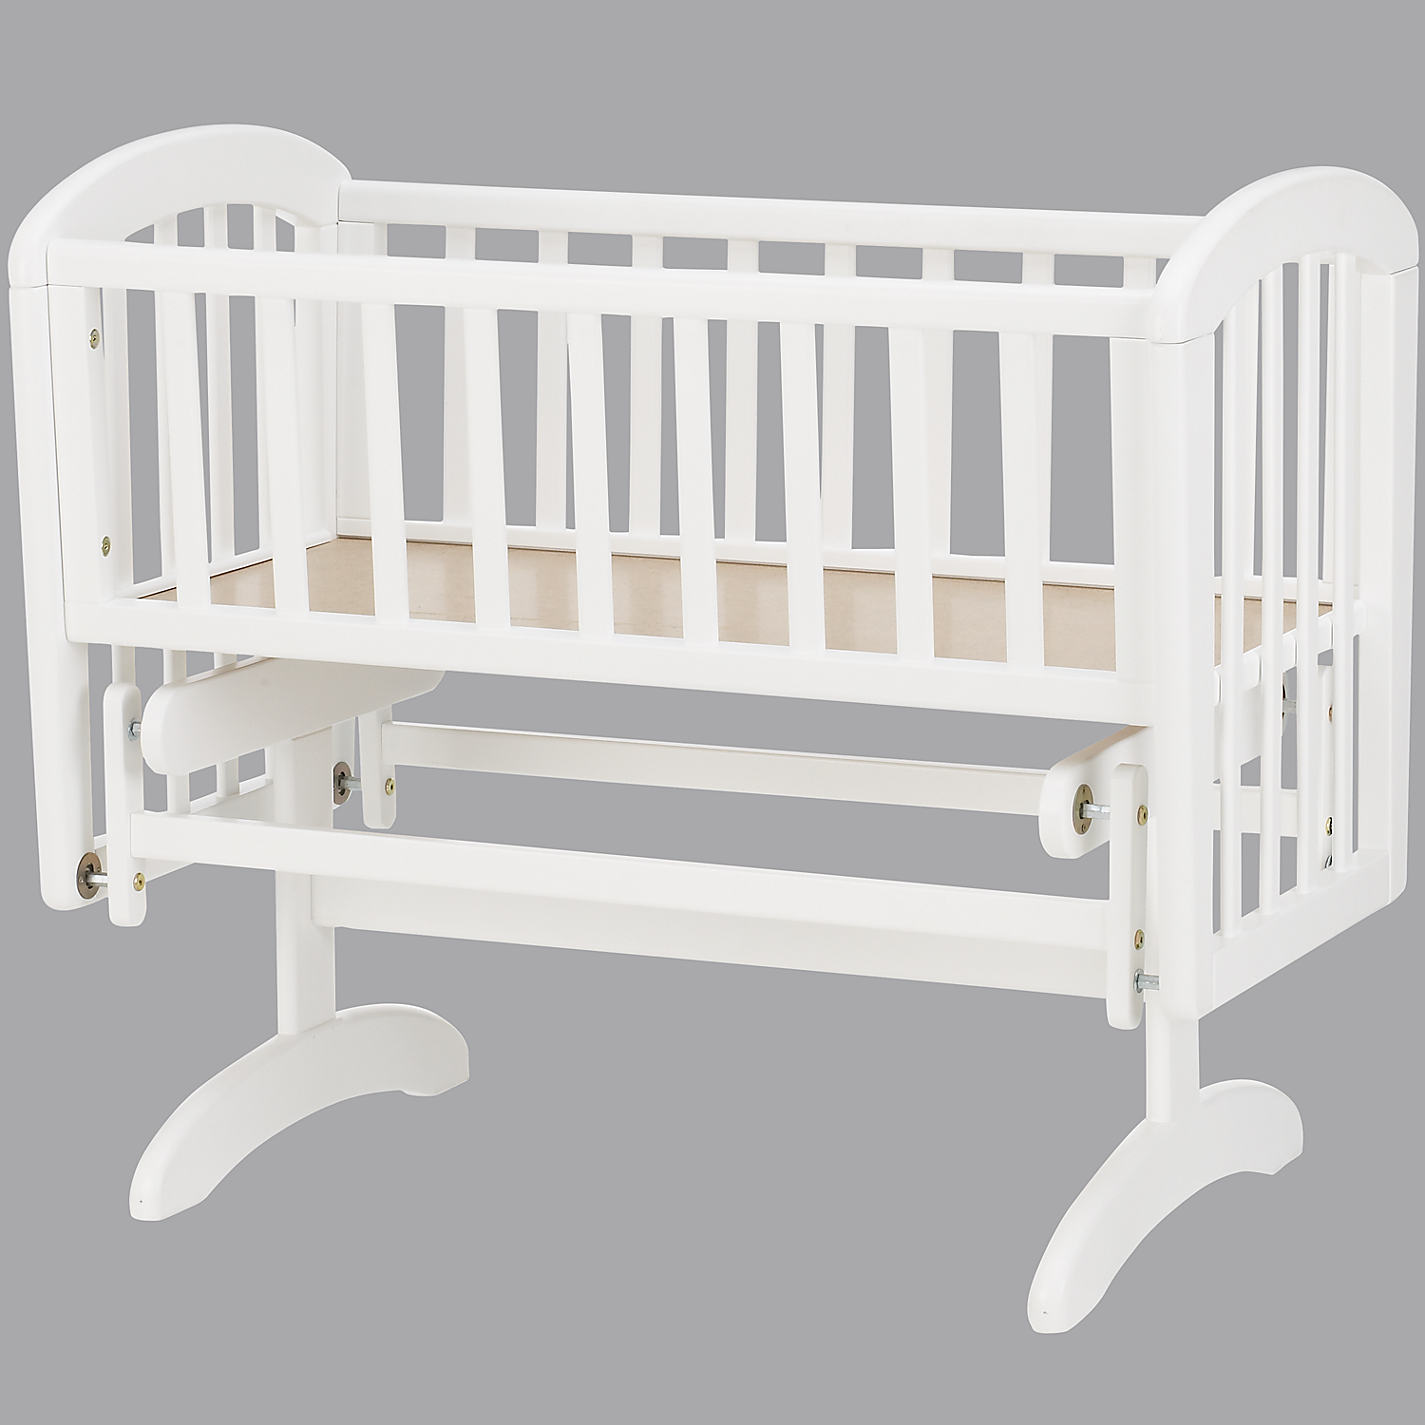 Rocking Crib For Babies Details About East Coast Swinging